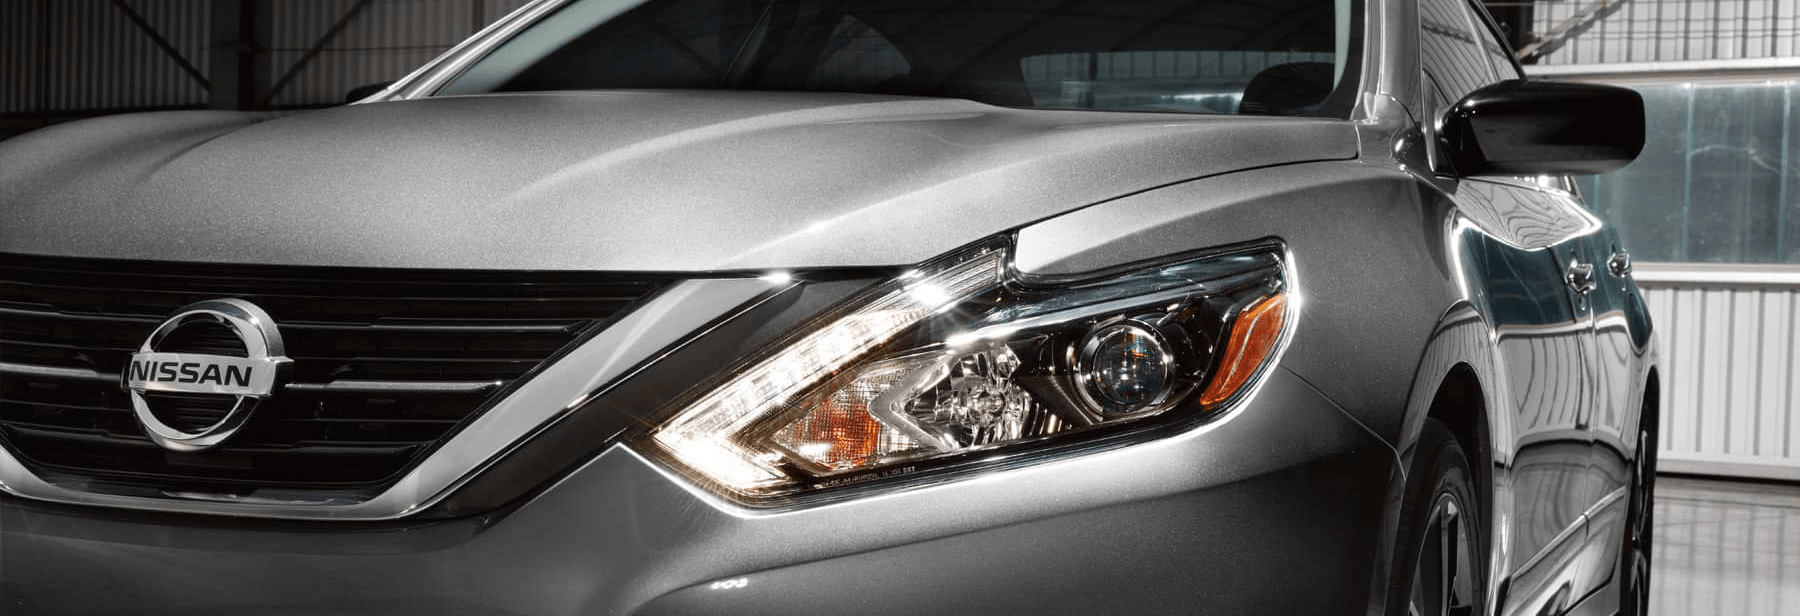 2017 Nissan Headlights